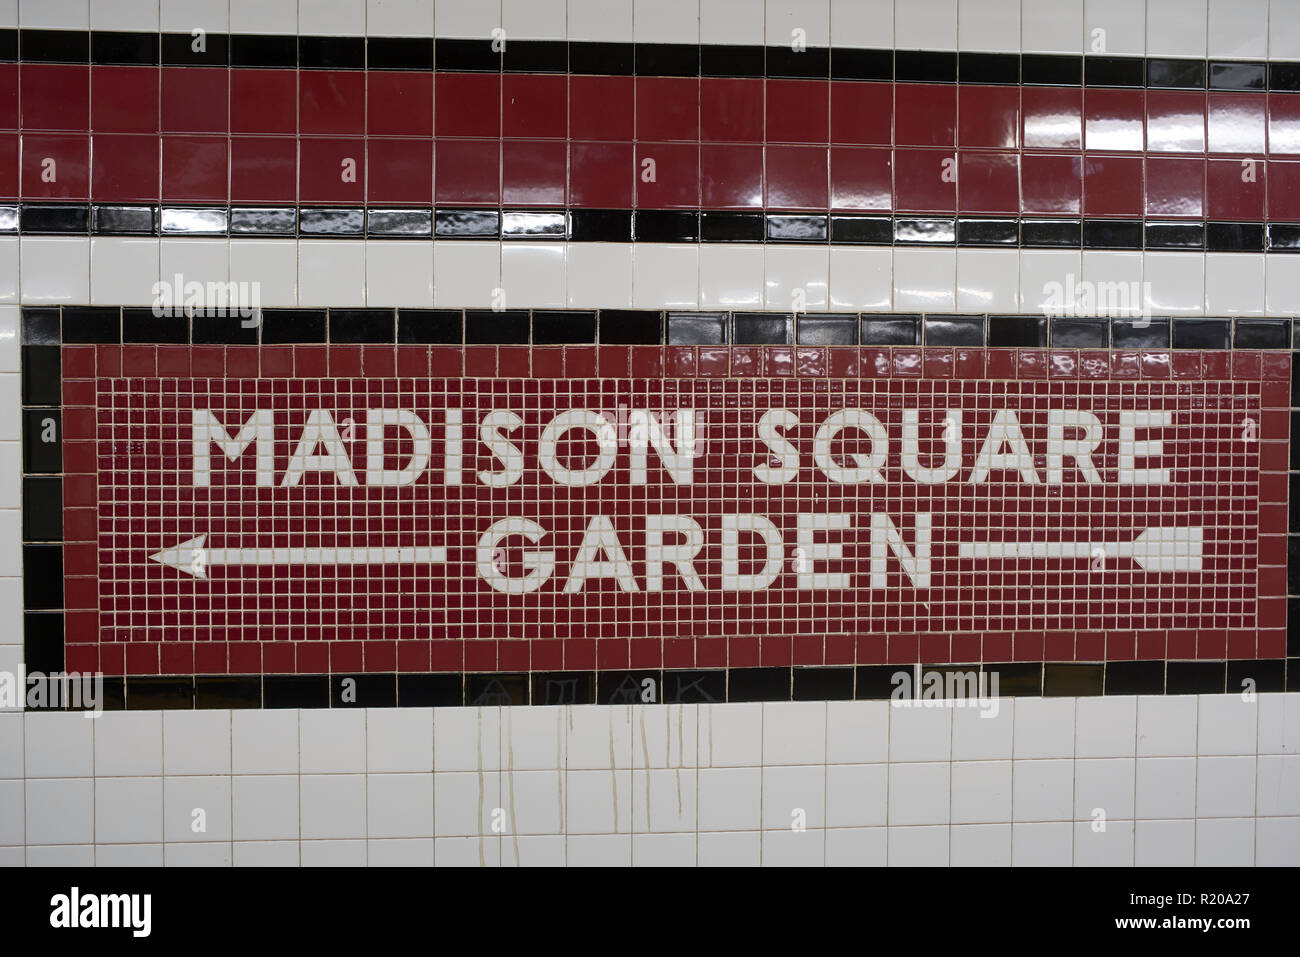 Madison Square Garden mosaic direction sign inside subway station in New York City. - Stock Image